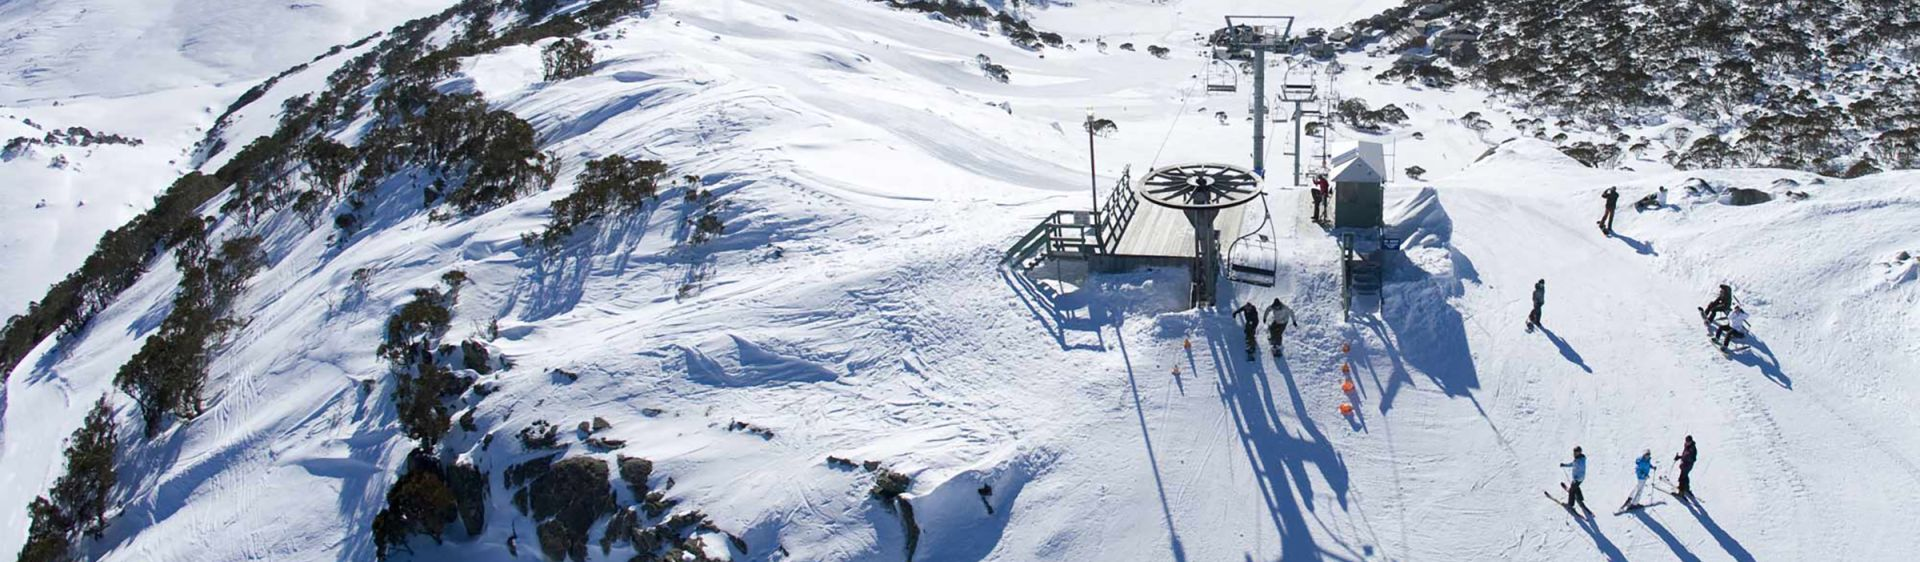 Charlotte Pass chair lift - Kosciuszko National Park